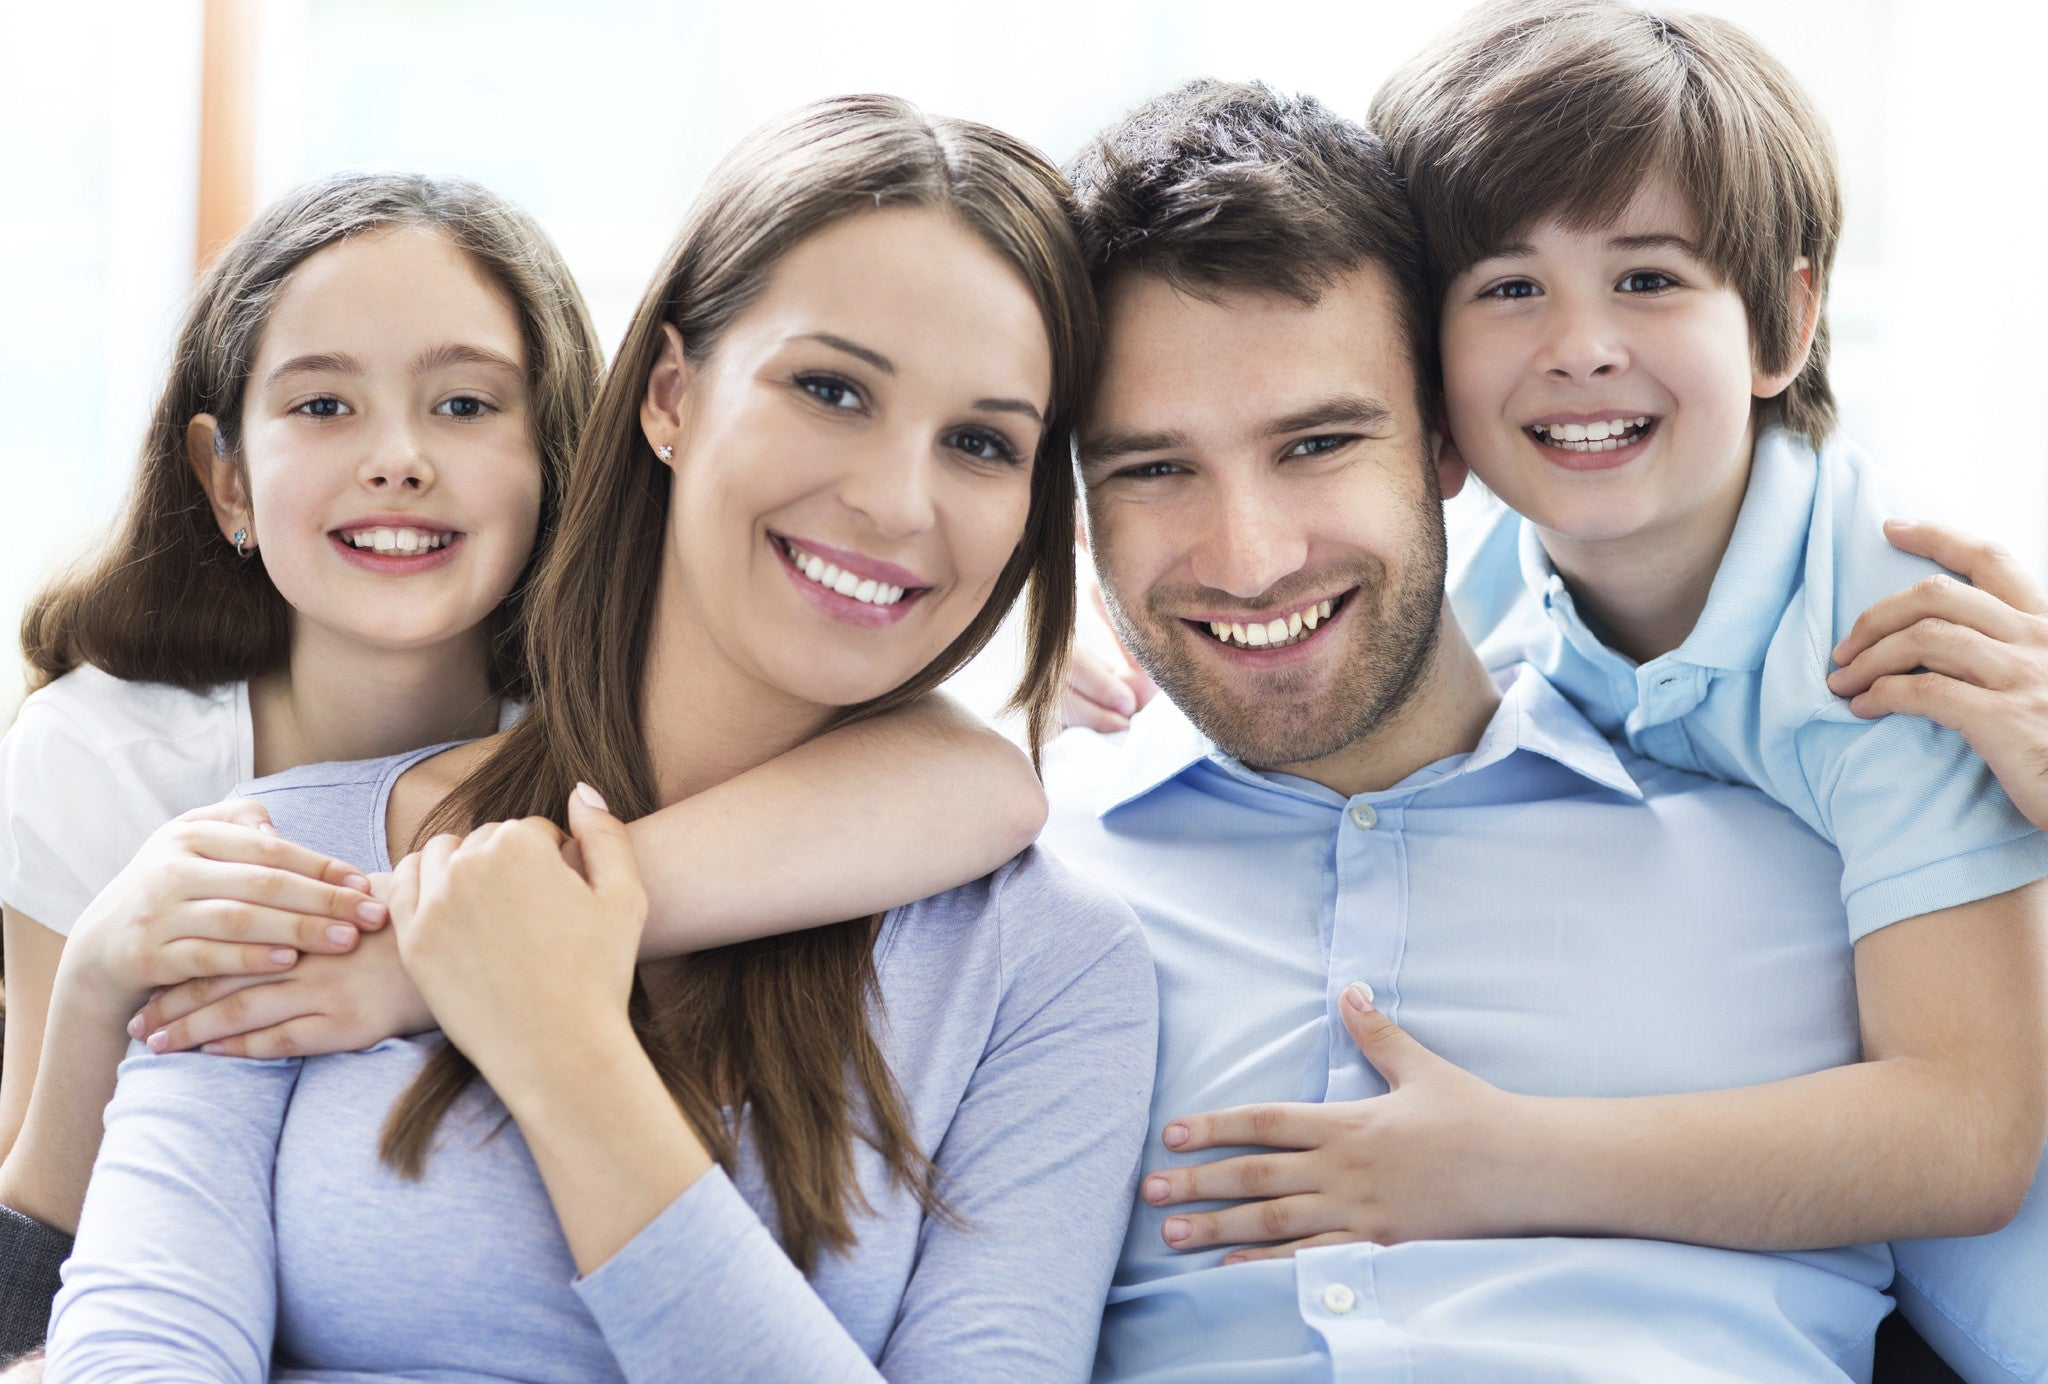 Family Dentistry by Distinctive Dentistry of Bend, Oregon